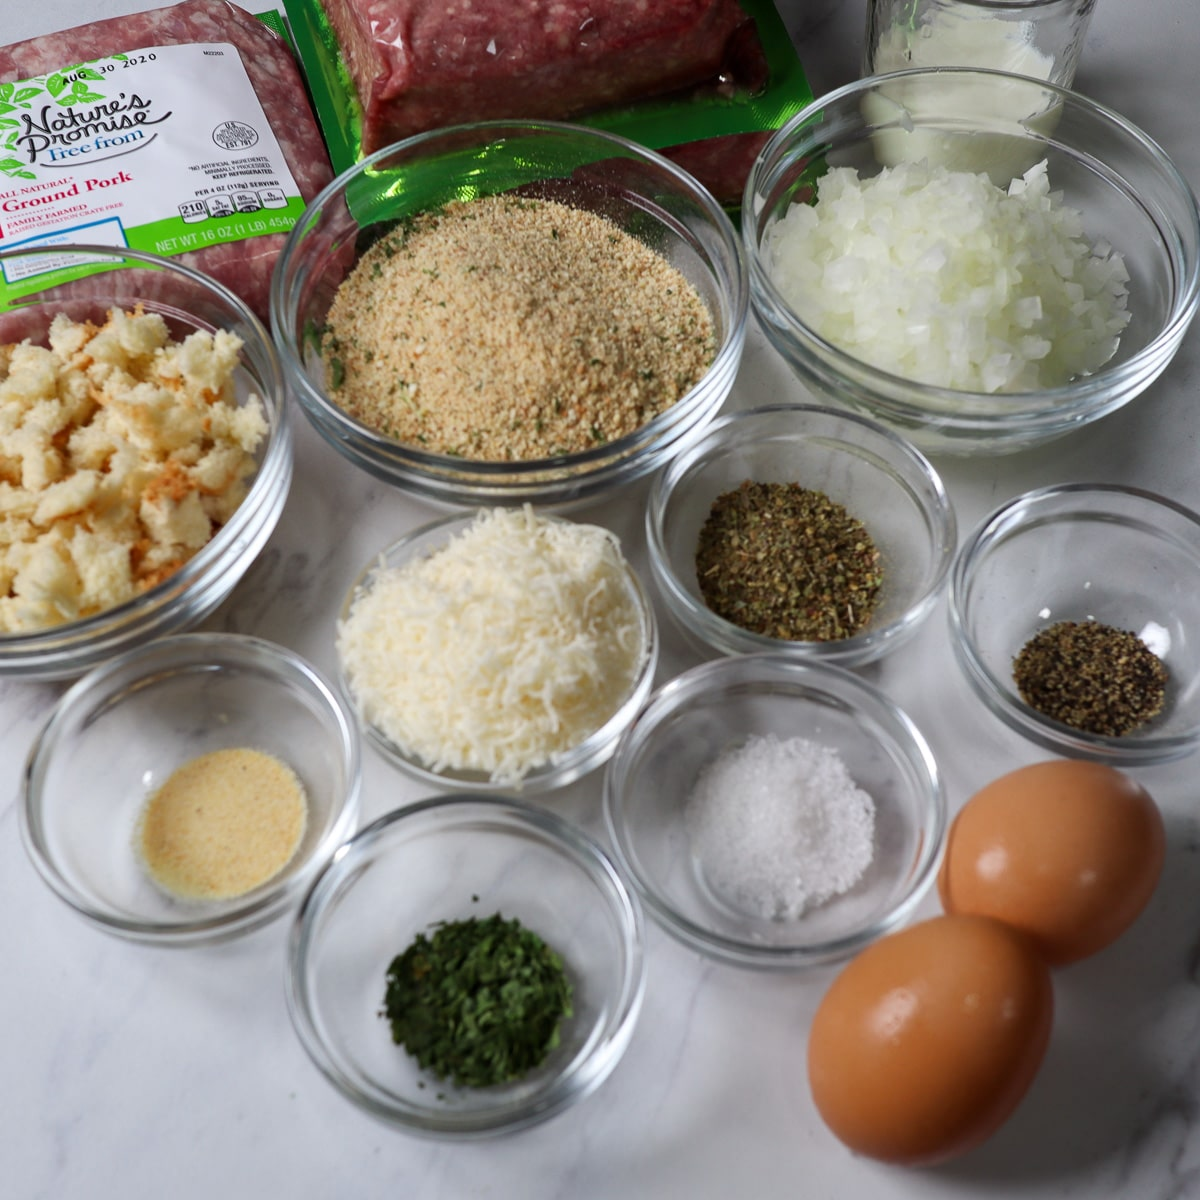 ingredients for the meatballs